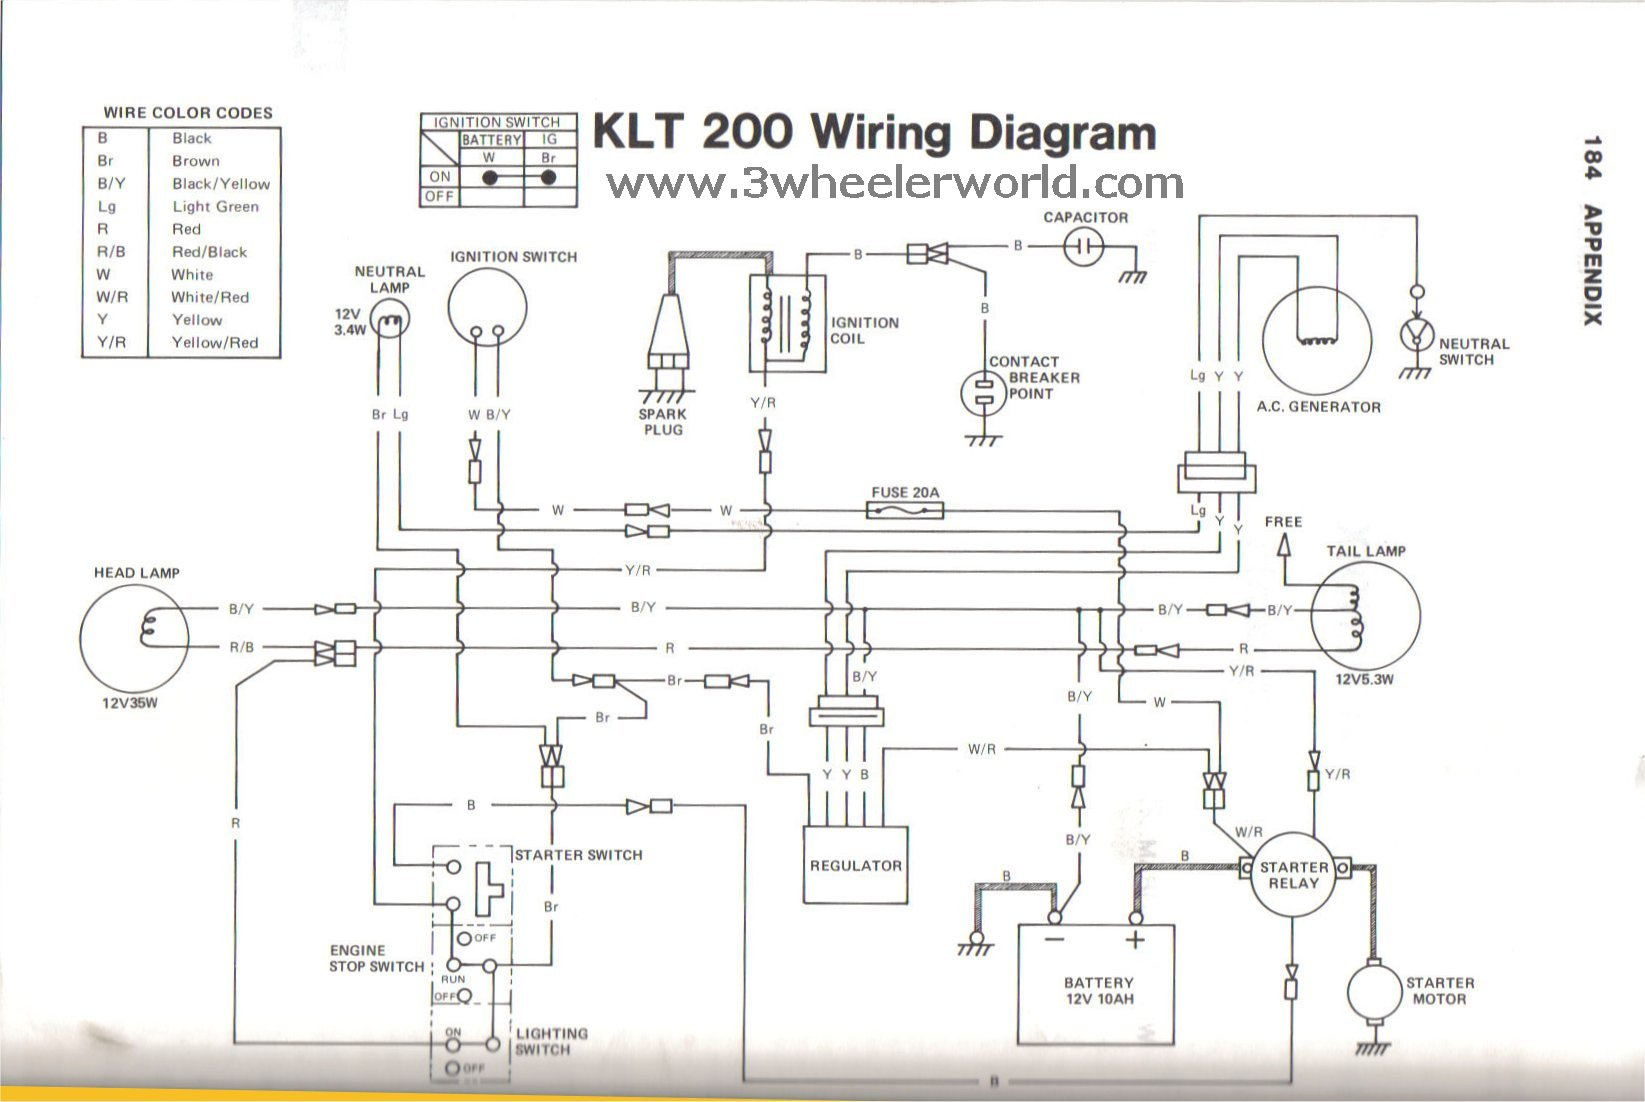 KLT200WiringDiagram1 3 wheeler world tech help kawasaki wiring diagrams kawasaki bayou 220 battery wiring diagram at n-0.co